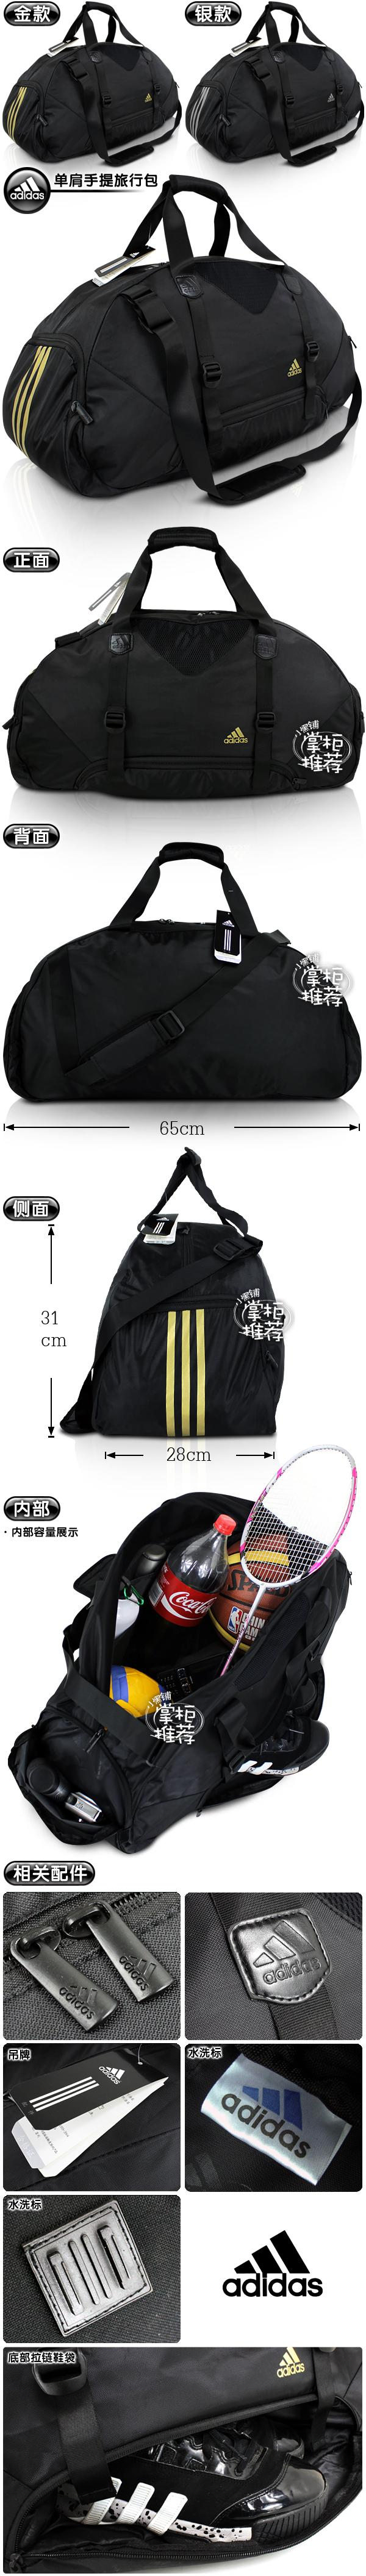 jual tas travel adidas model selempang